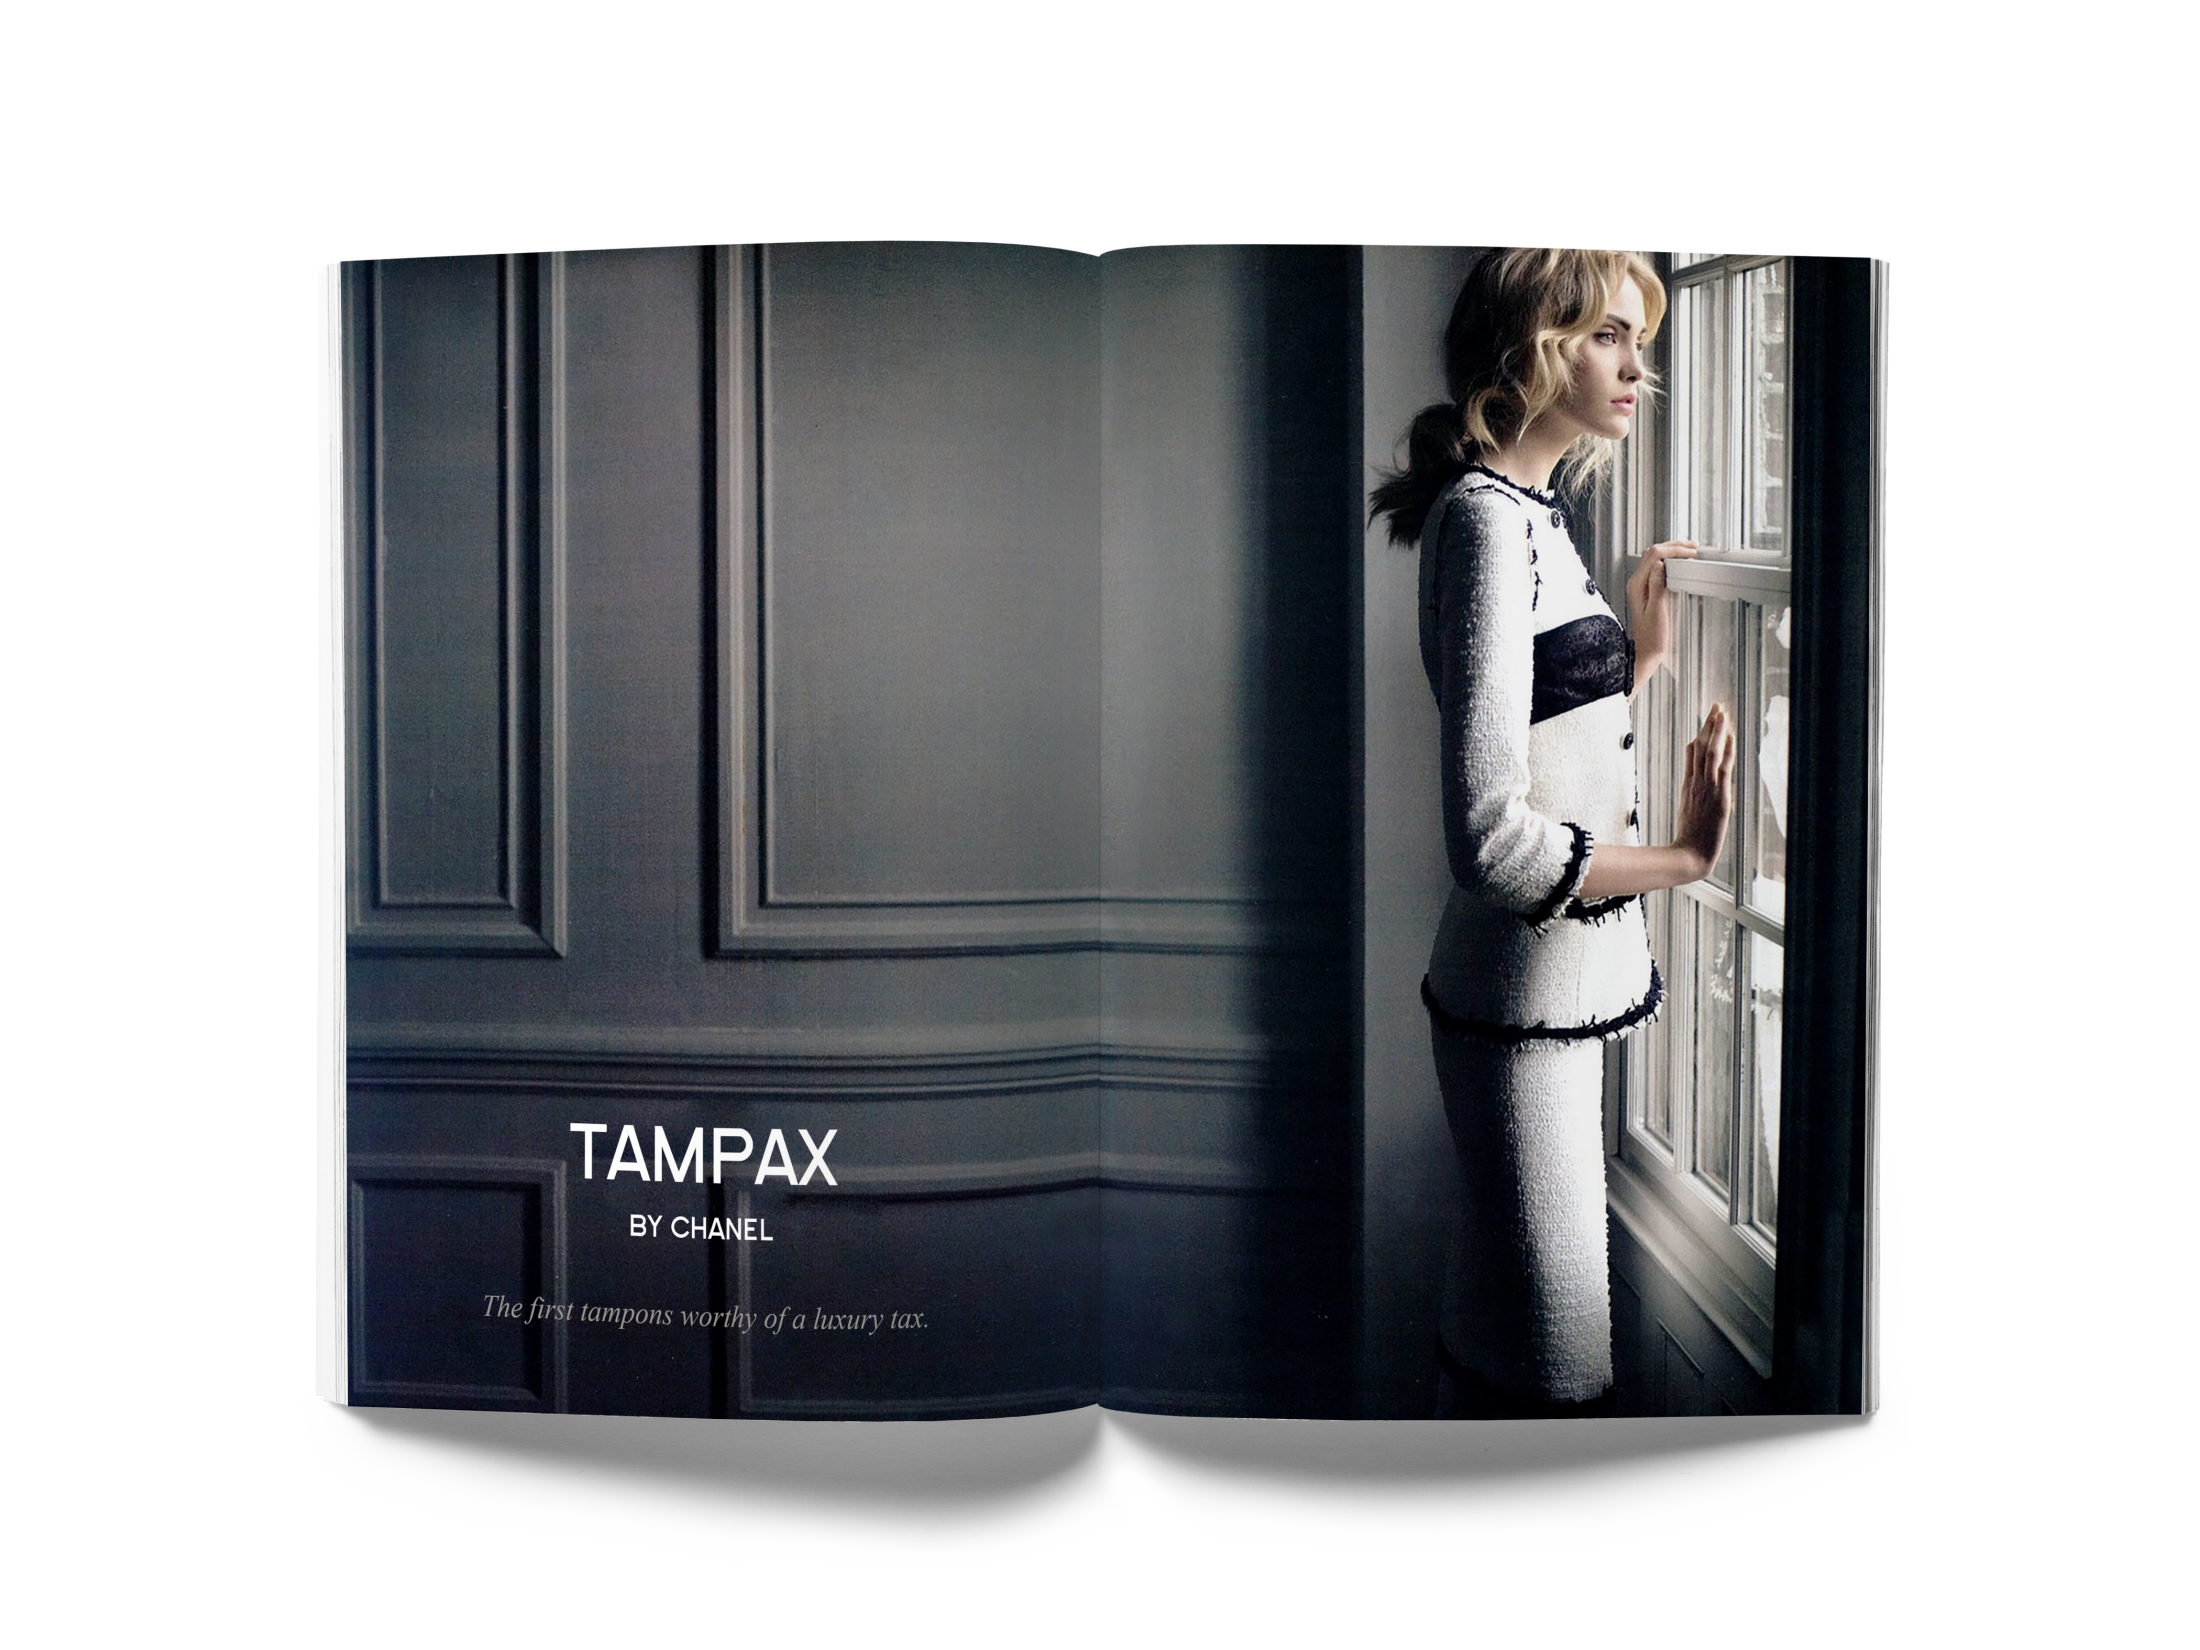 Tampax Integrated Ad - Necessary Luxuries